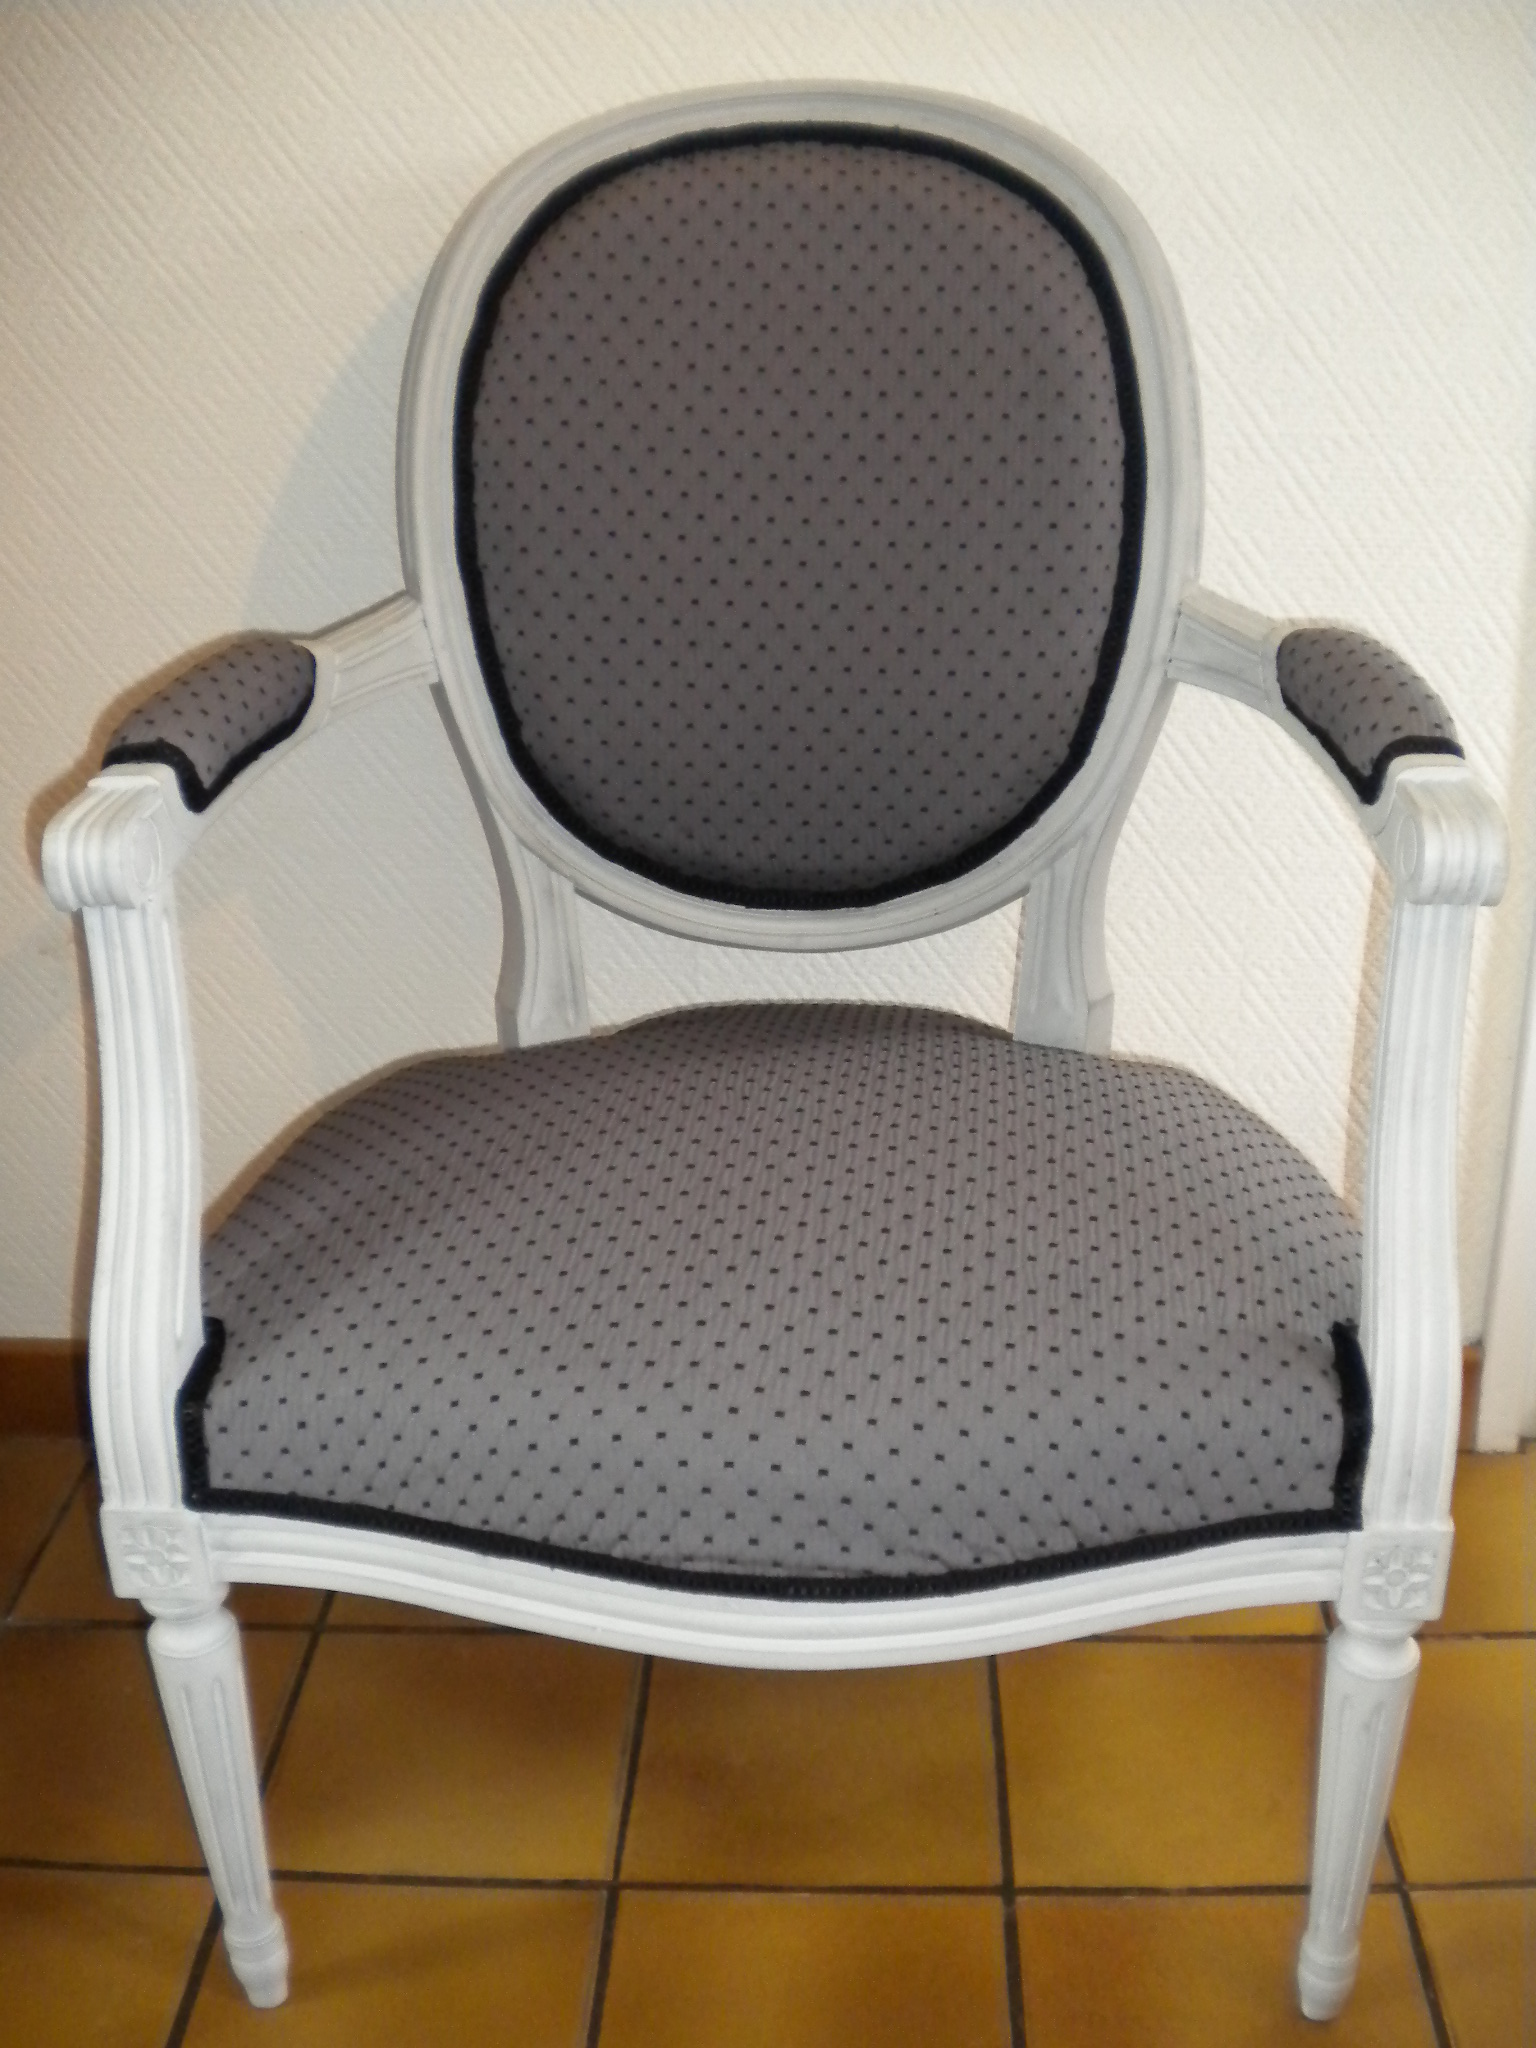 Fauteuil Chaise Tapisserie Patine Relooking Oise Picardie